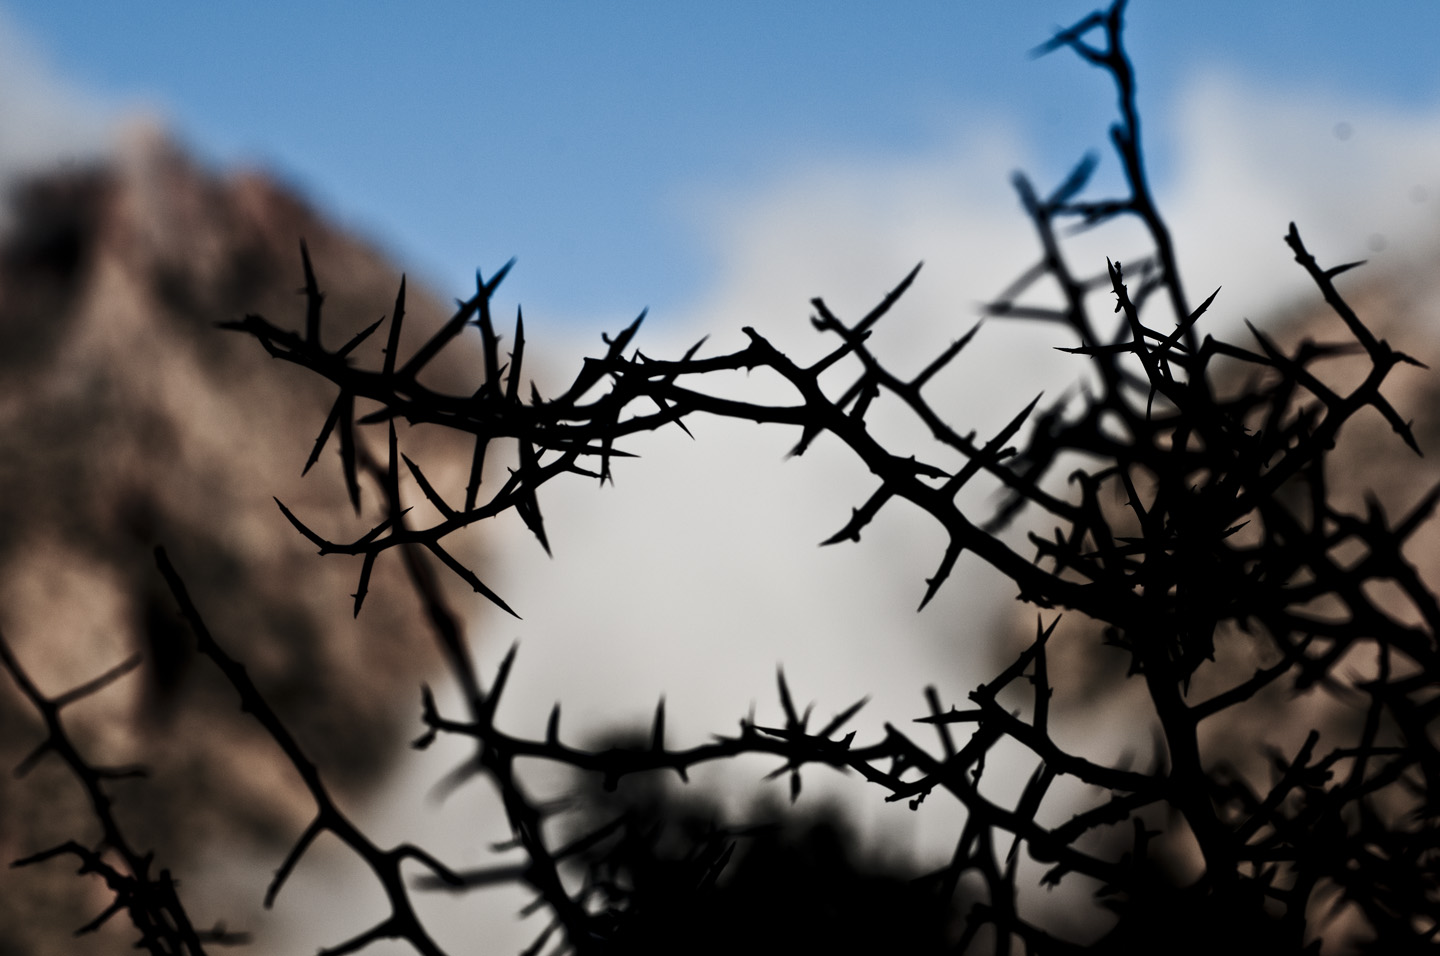 More thorns, Texas. Photo: Tony Carnes/A Journey through NYC religions